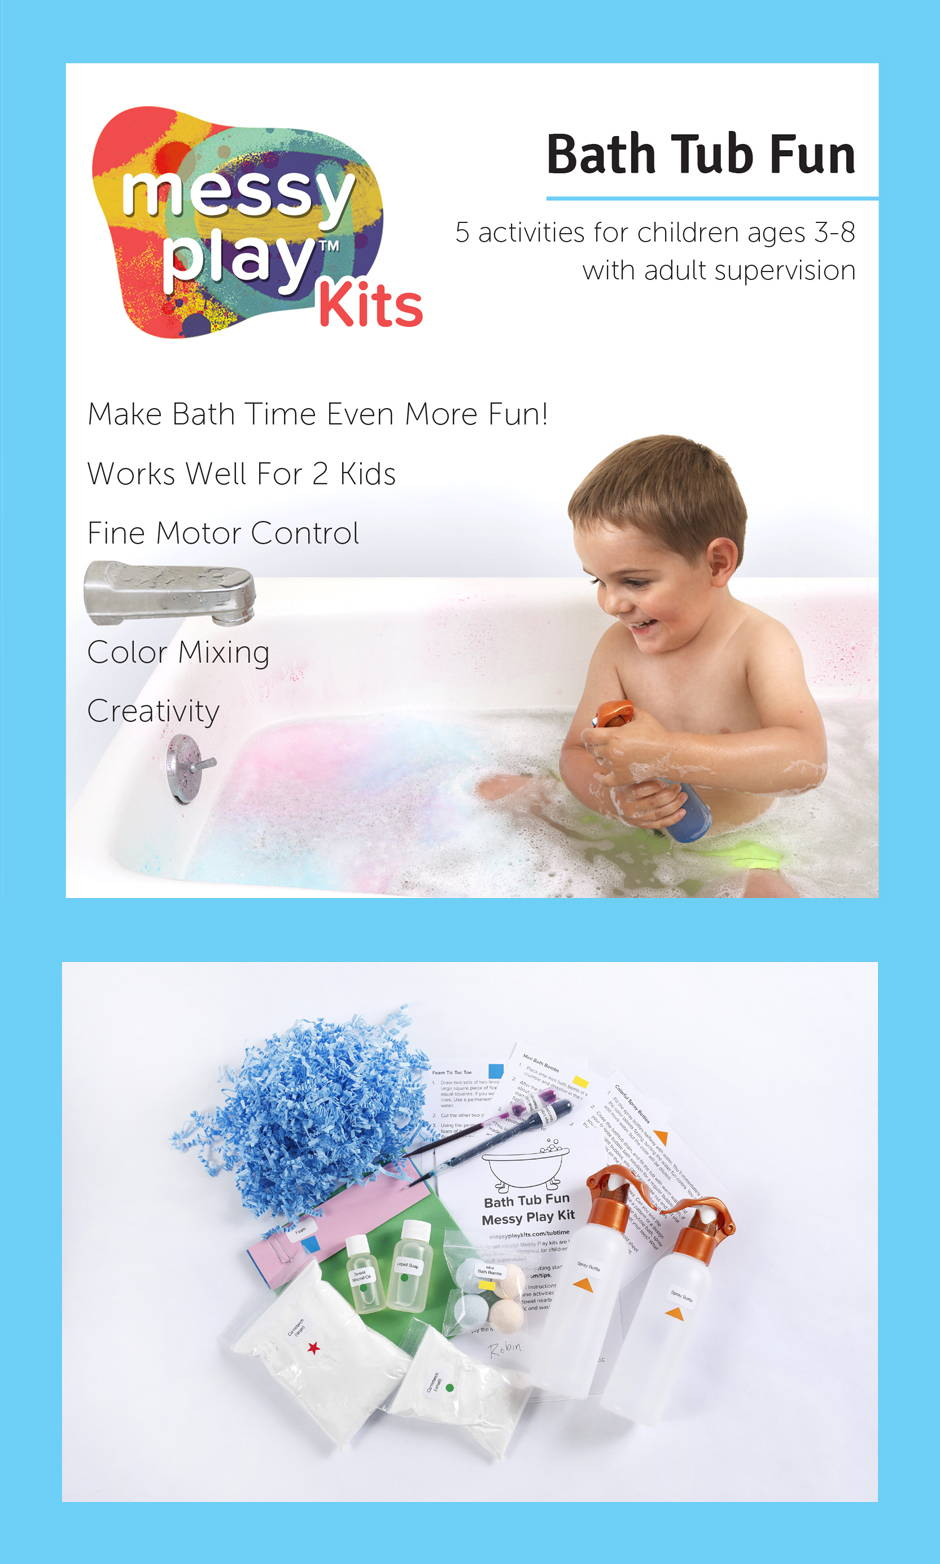 Bath Tub Fun Messy Play Kit contains 5 activities that teach fine motor control, color mixing, creativity. And makes bath time more fun and works well for 2 kids.